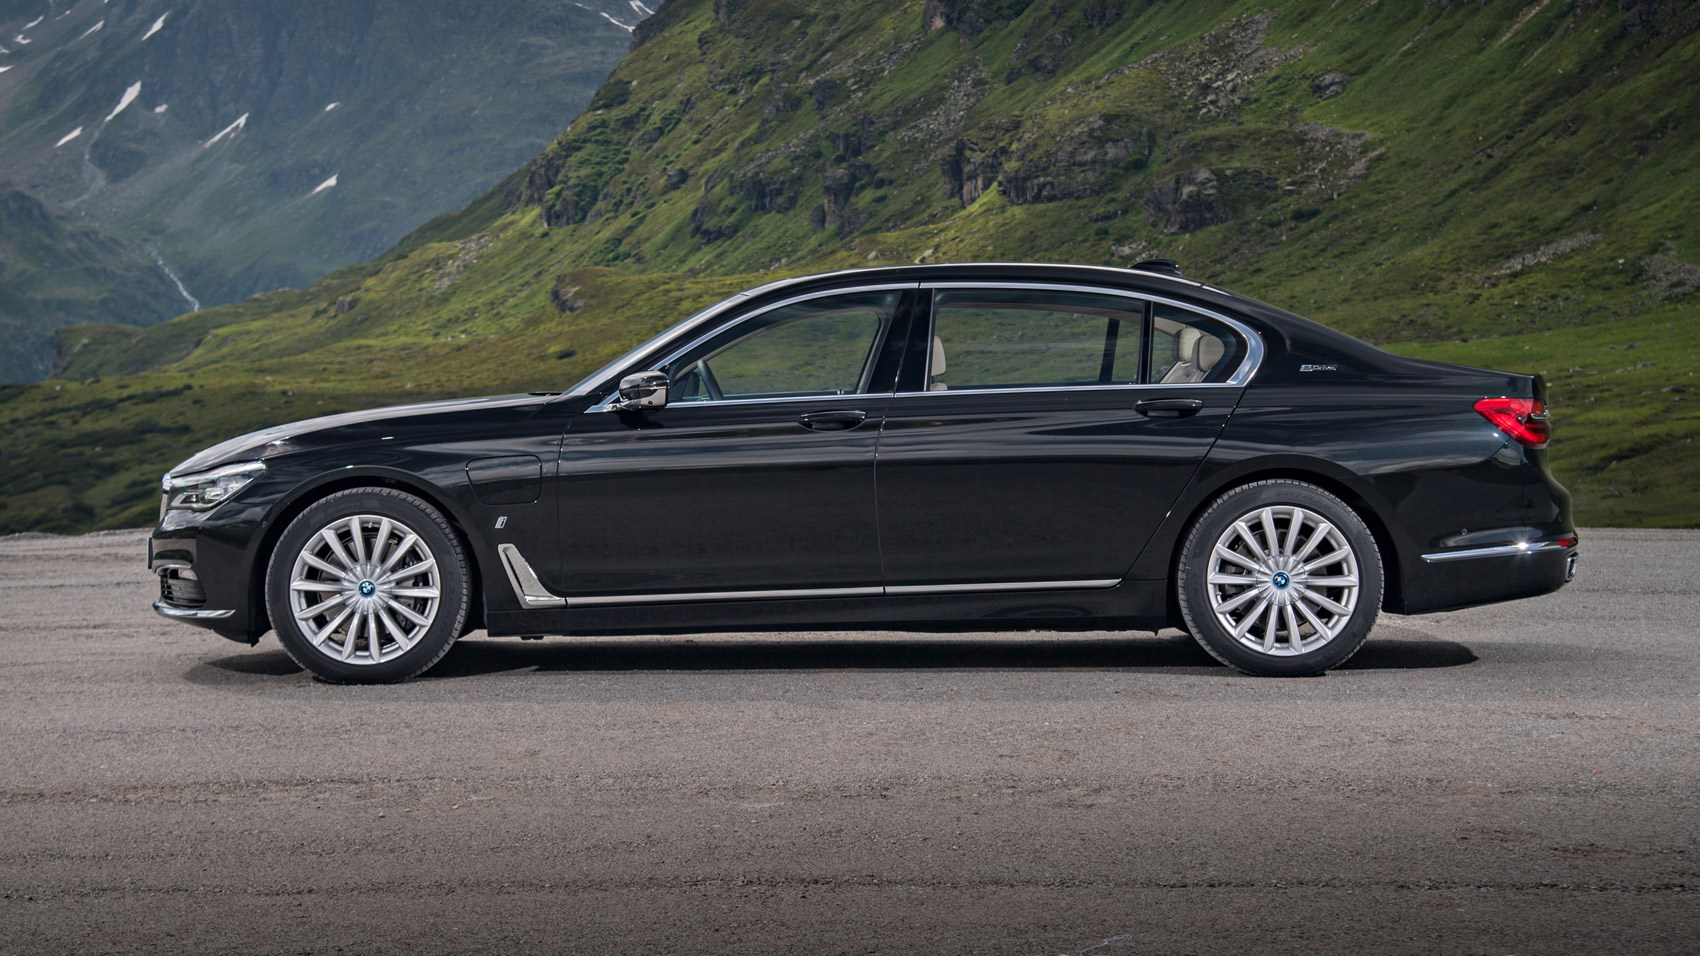 bmw 7 series 740le xdrive iperformance 2016 review car magazine. Black Bedroom Furniture Sets. Home Design Ideas